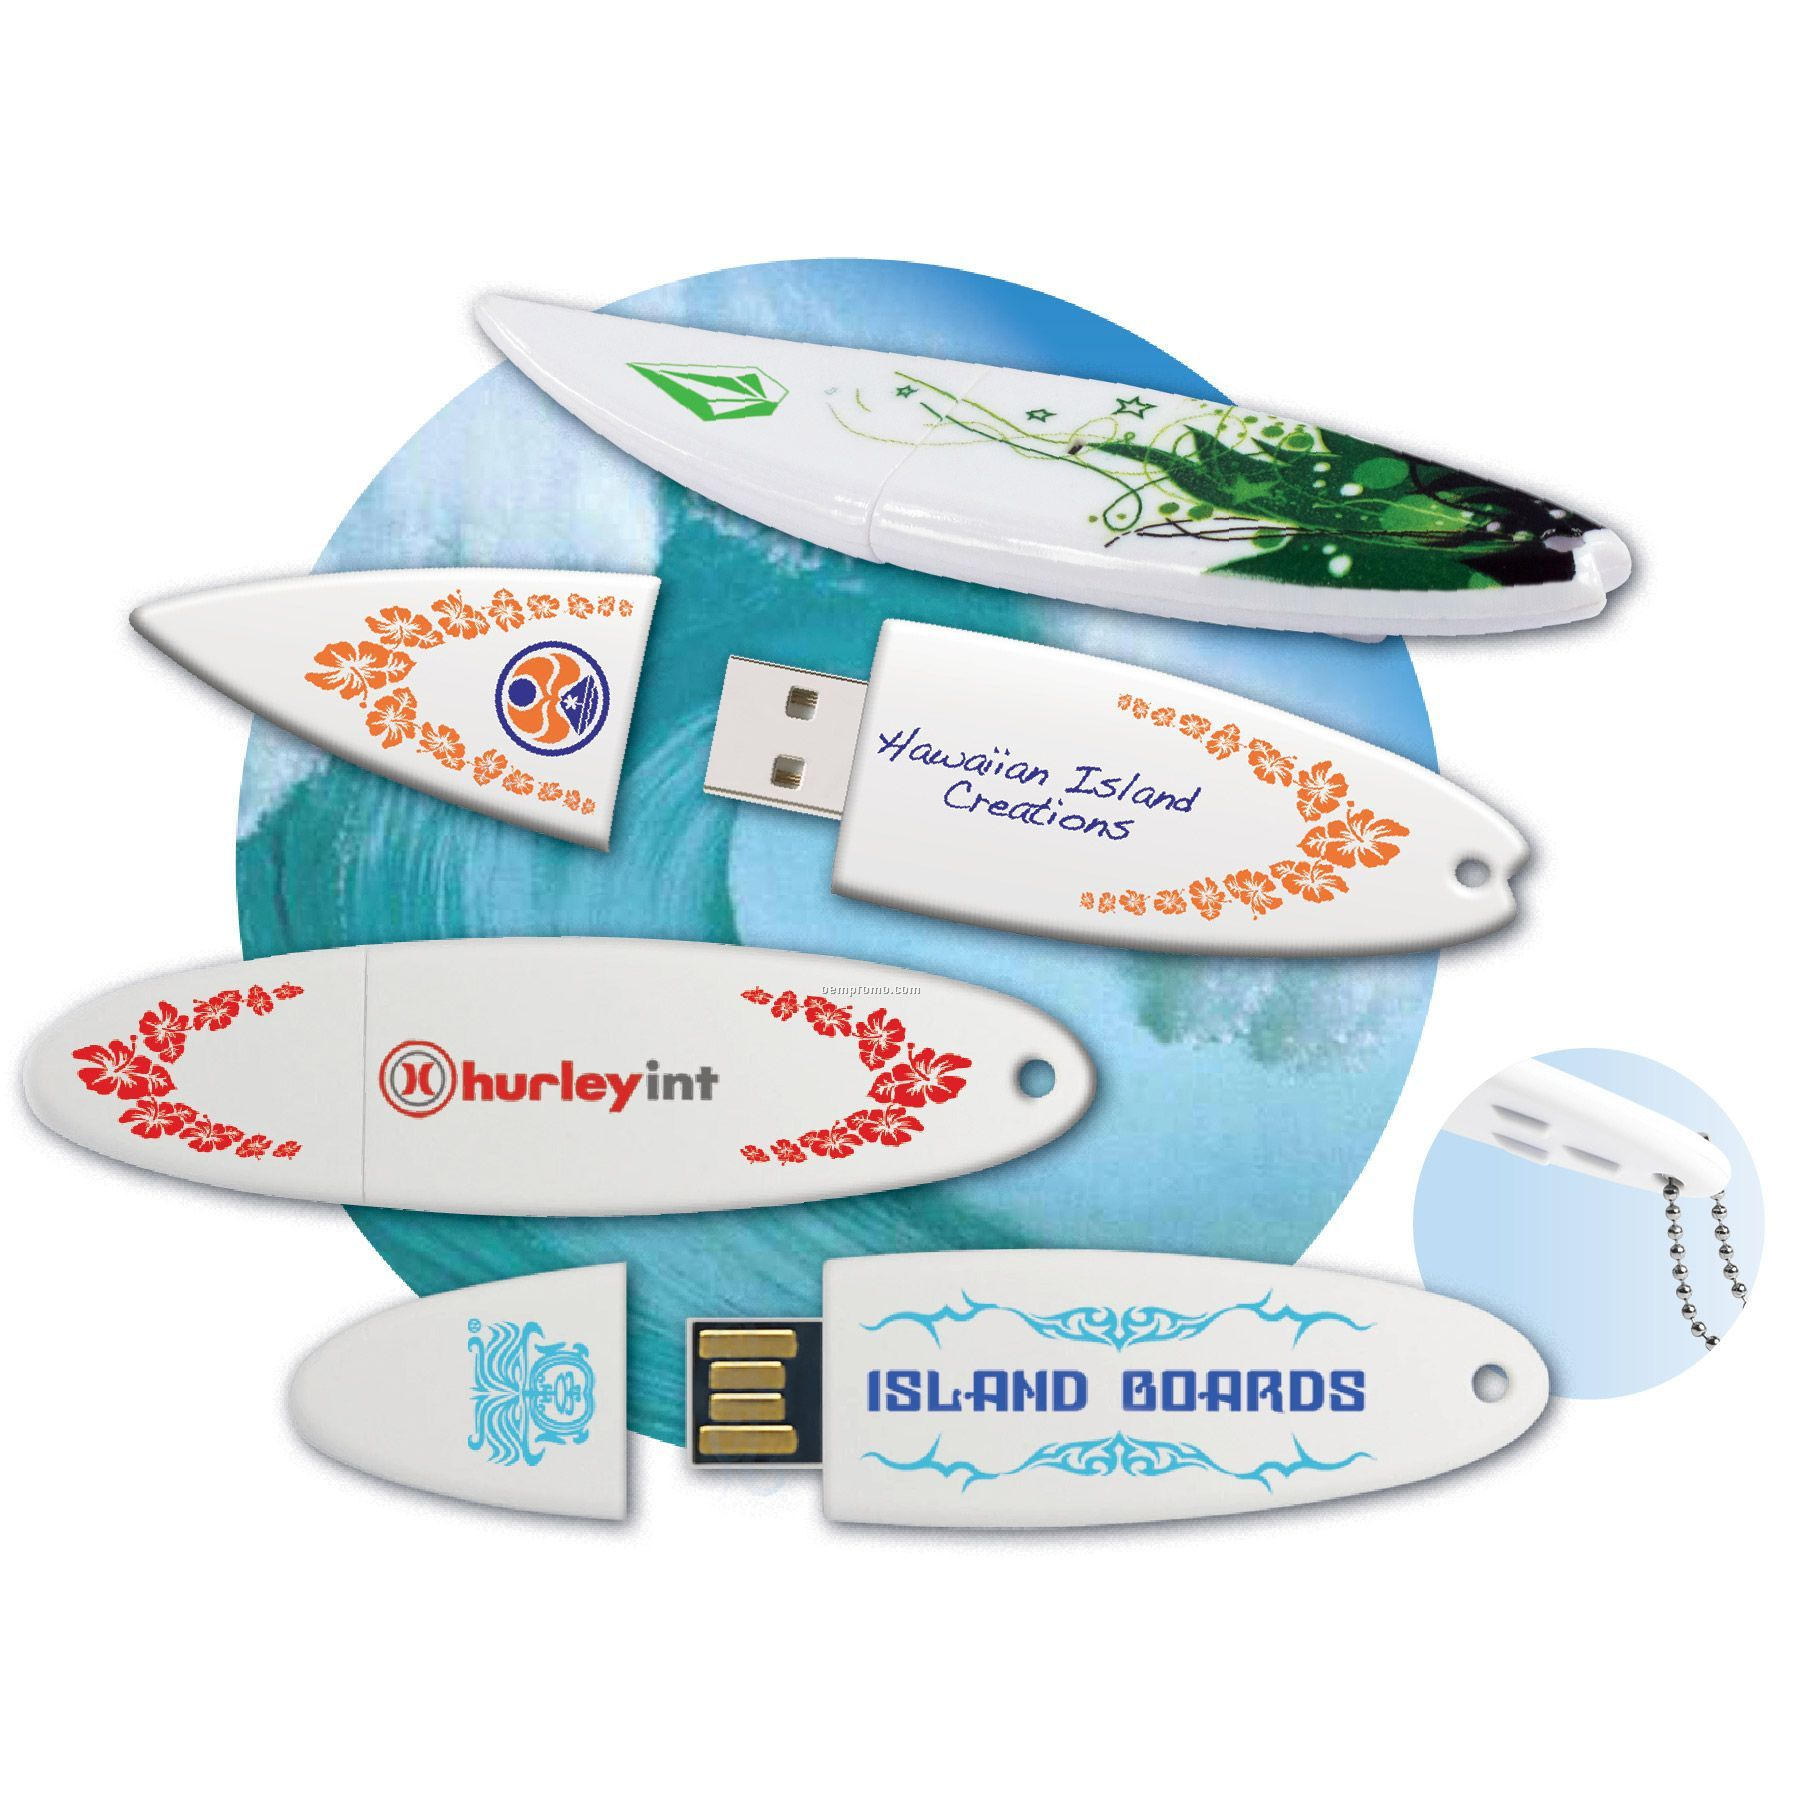 USB 2.o Surfboard Drives Sf